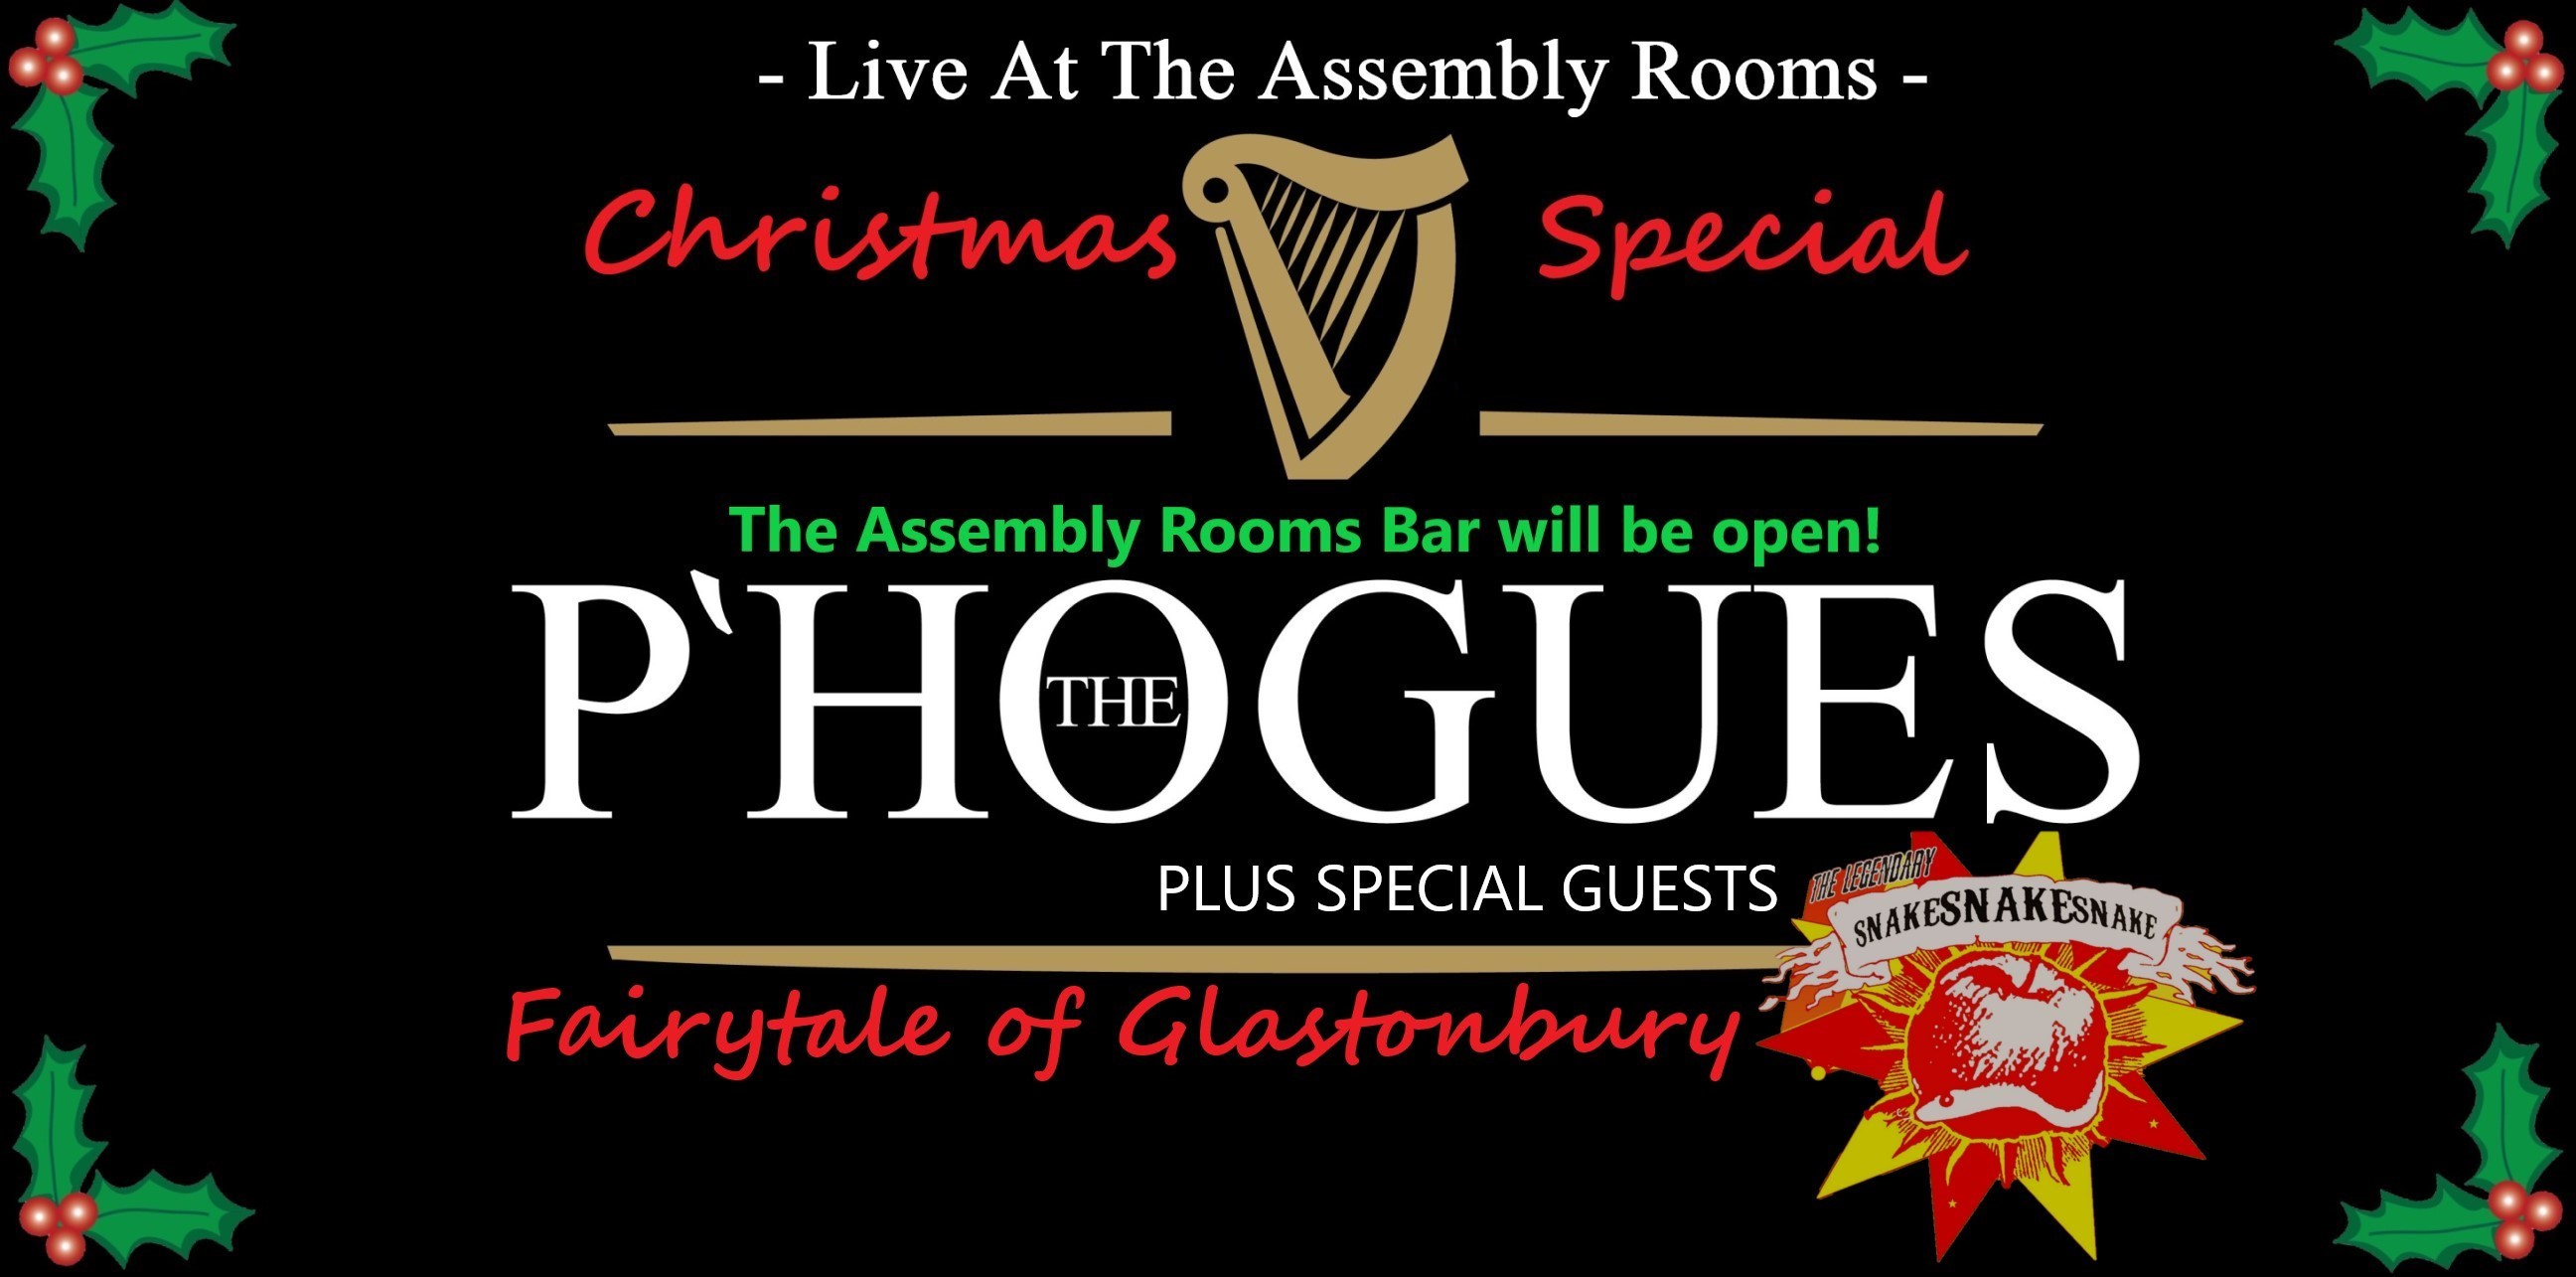 Fairytale of Glastonbury 2021 - With THE P'HOGUES - A Christmas Special + Special Guests: The Legendary snakeSNAKEsnake